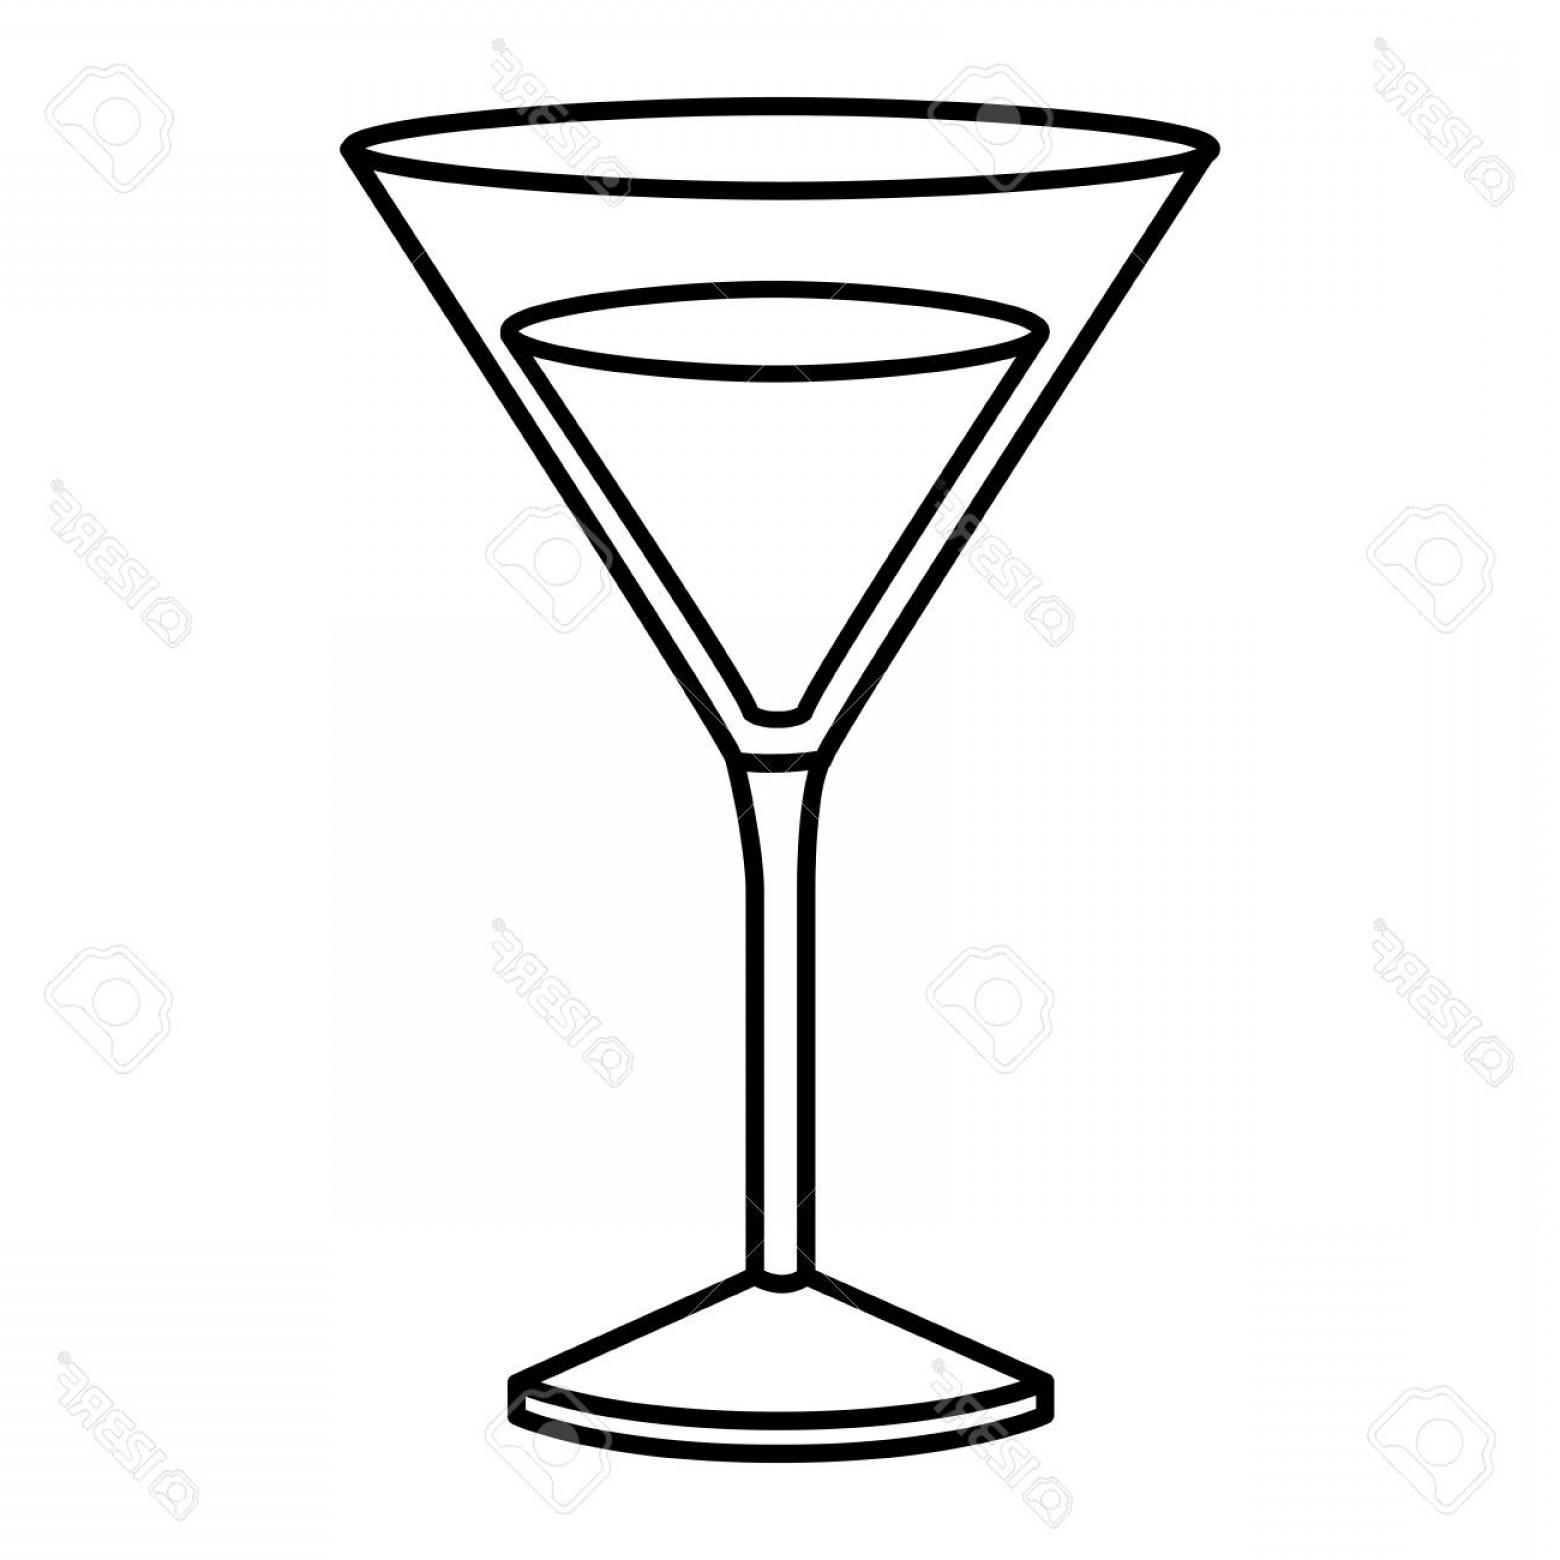 1560x1560 Photostock Vector Monochrome Silhouette Of Drink Cocktail Glass